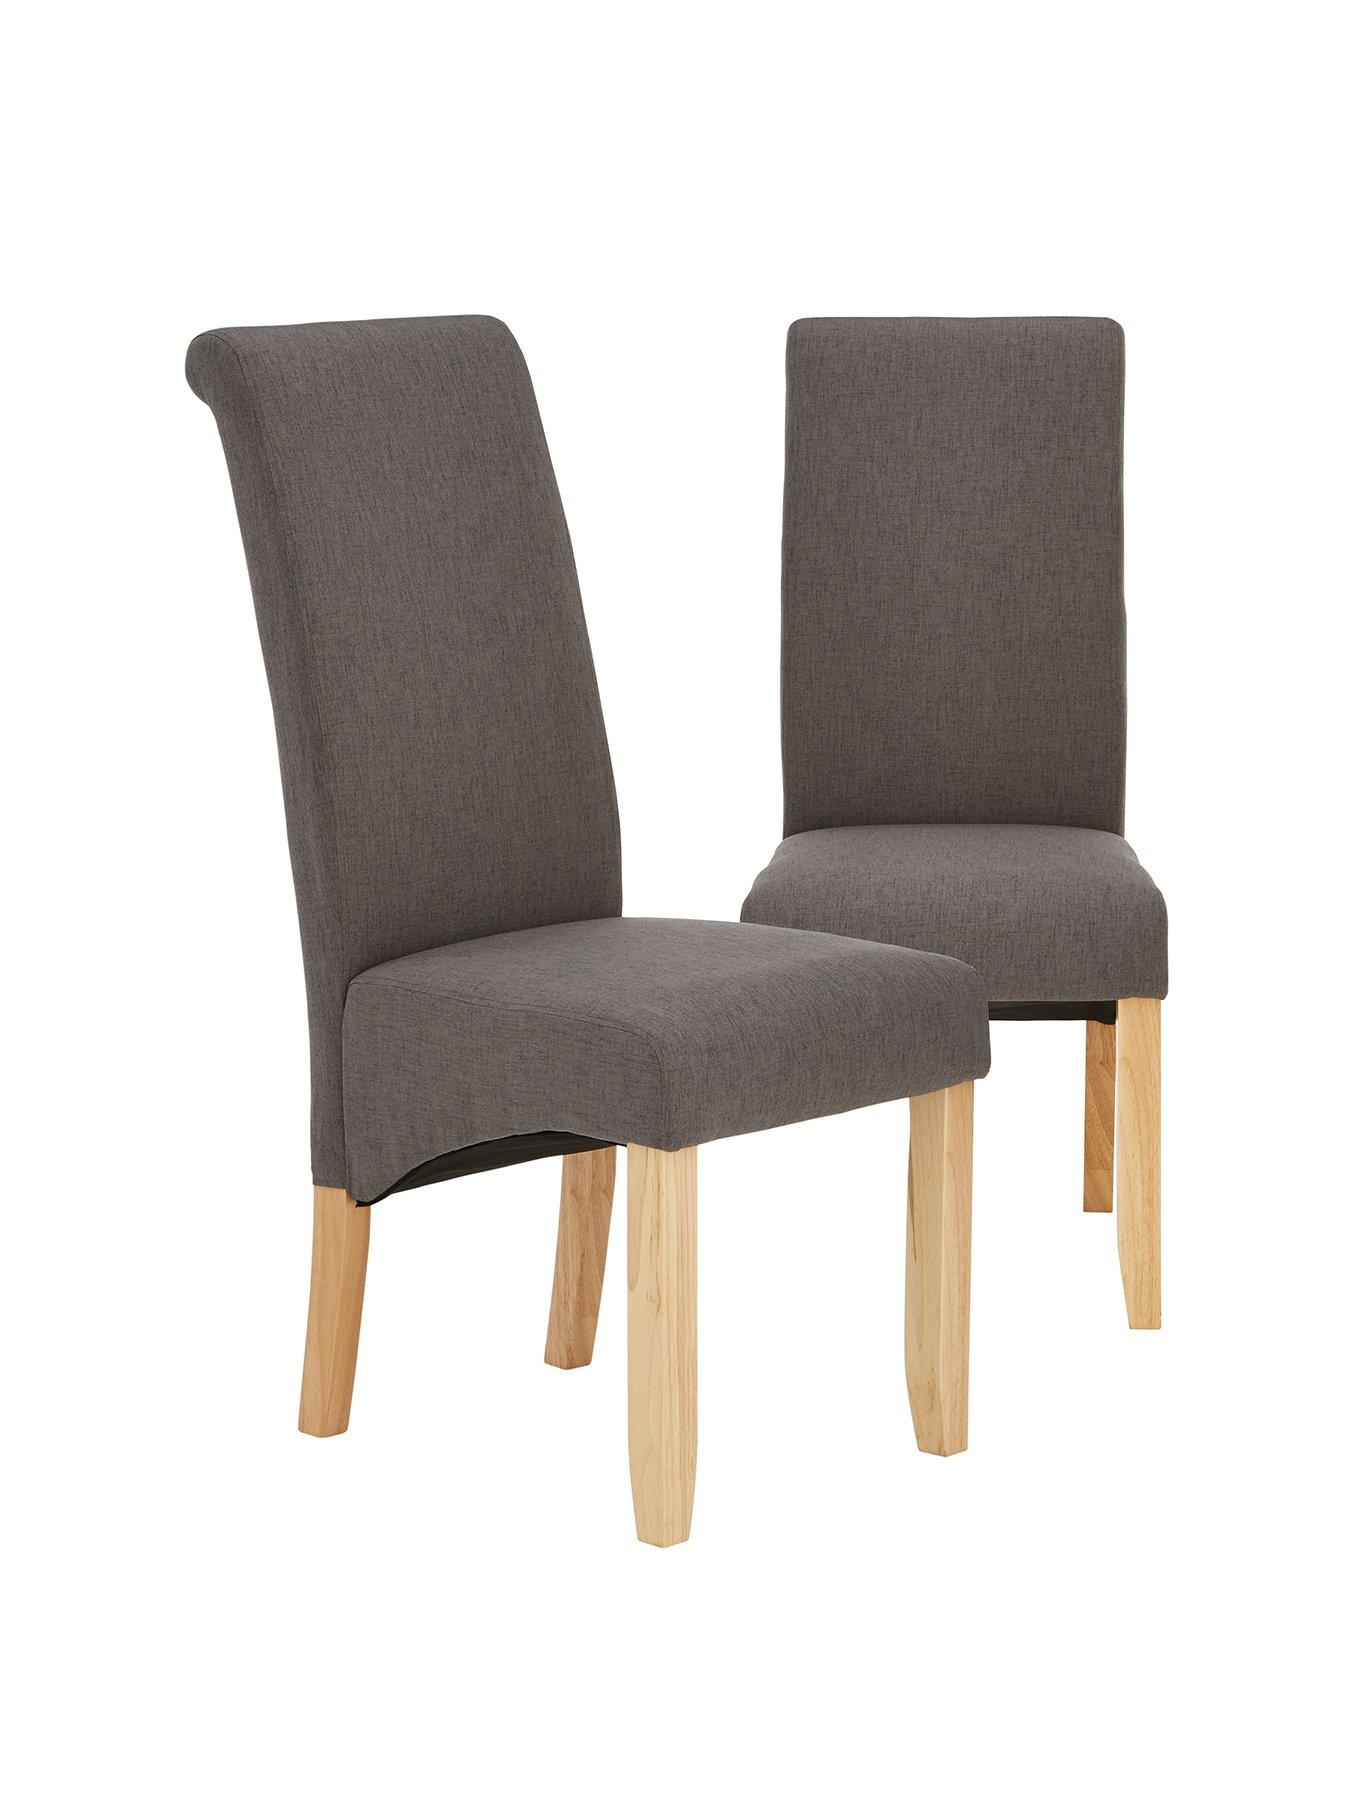 Pair Of Chatham Fabric Dining Chairs | Very.co.uk